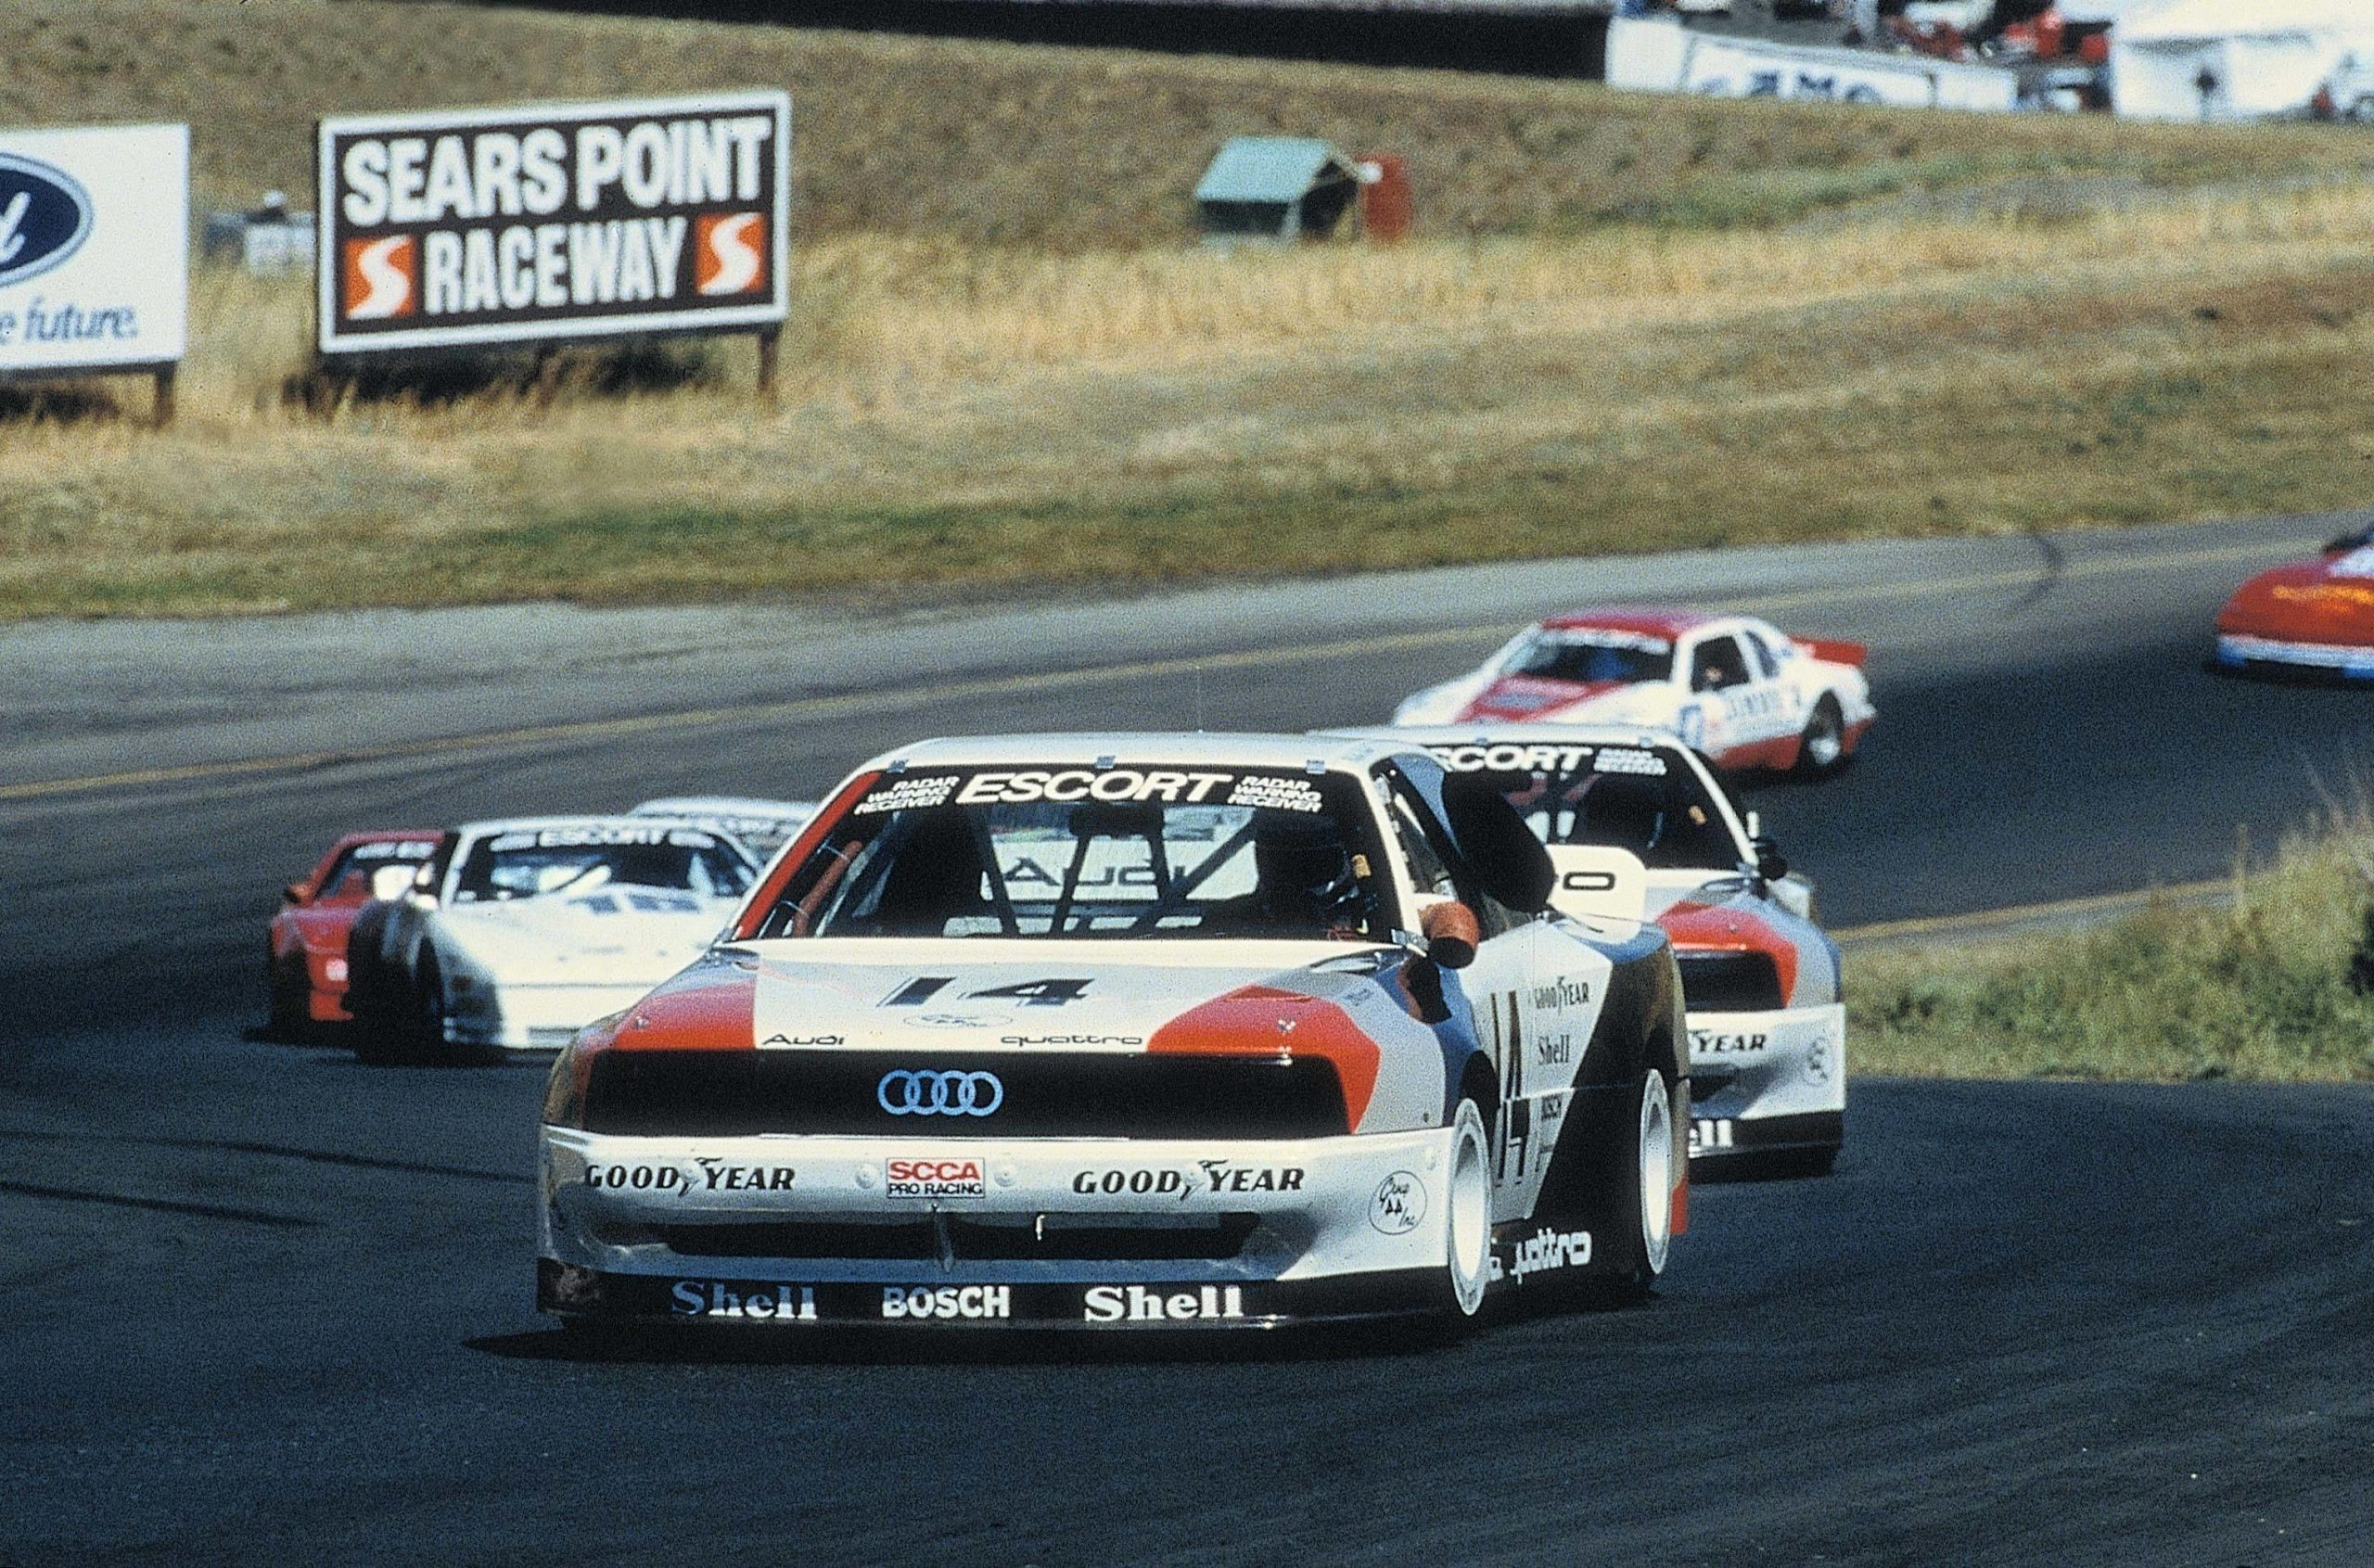 1988: Hurley Haywood wins the TransAm Championship with the Audi 200 quattro